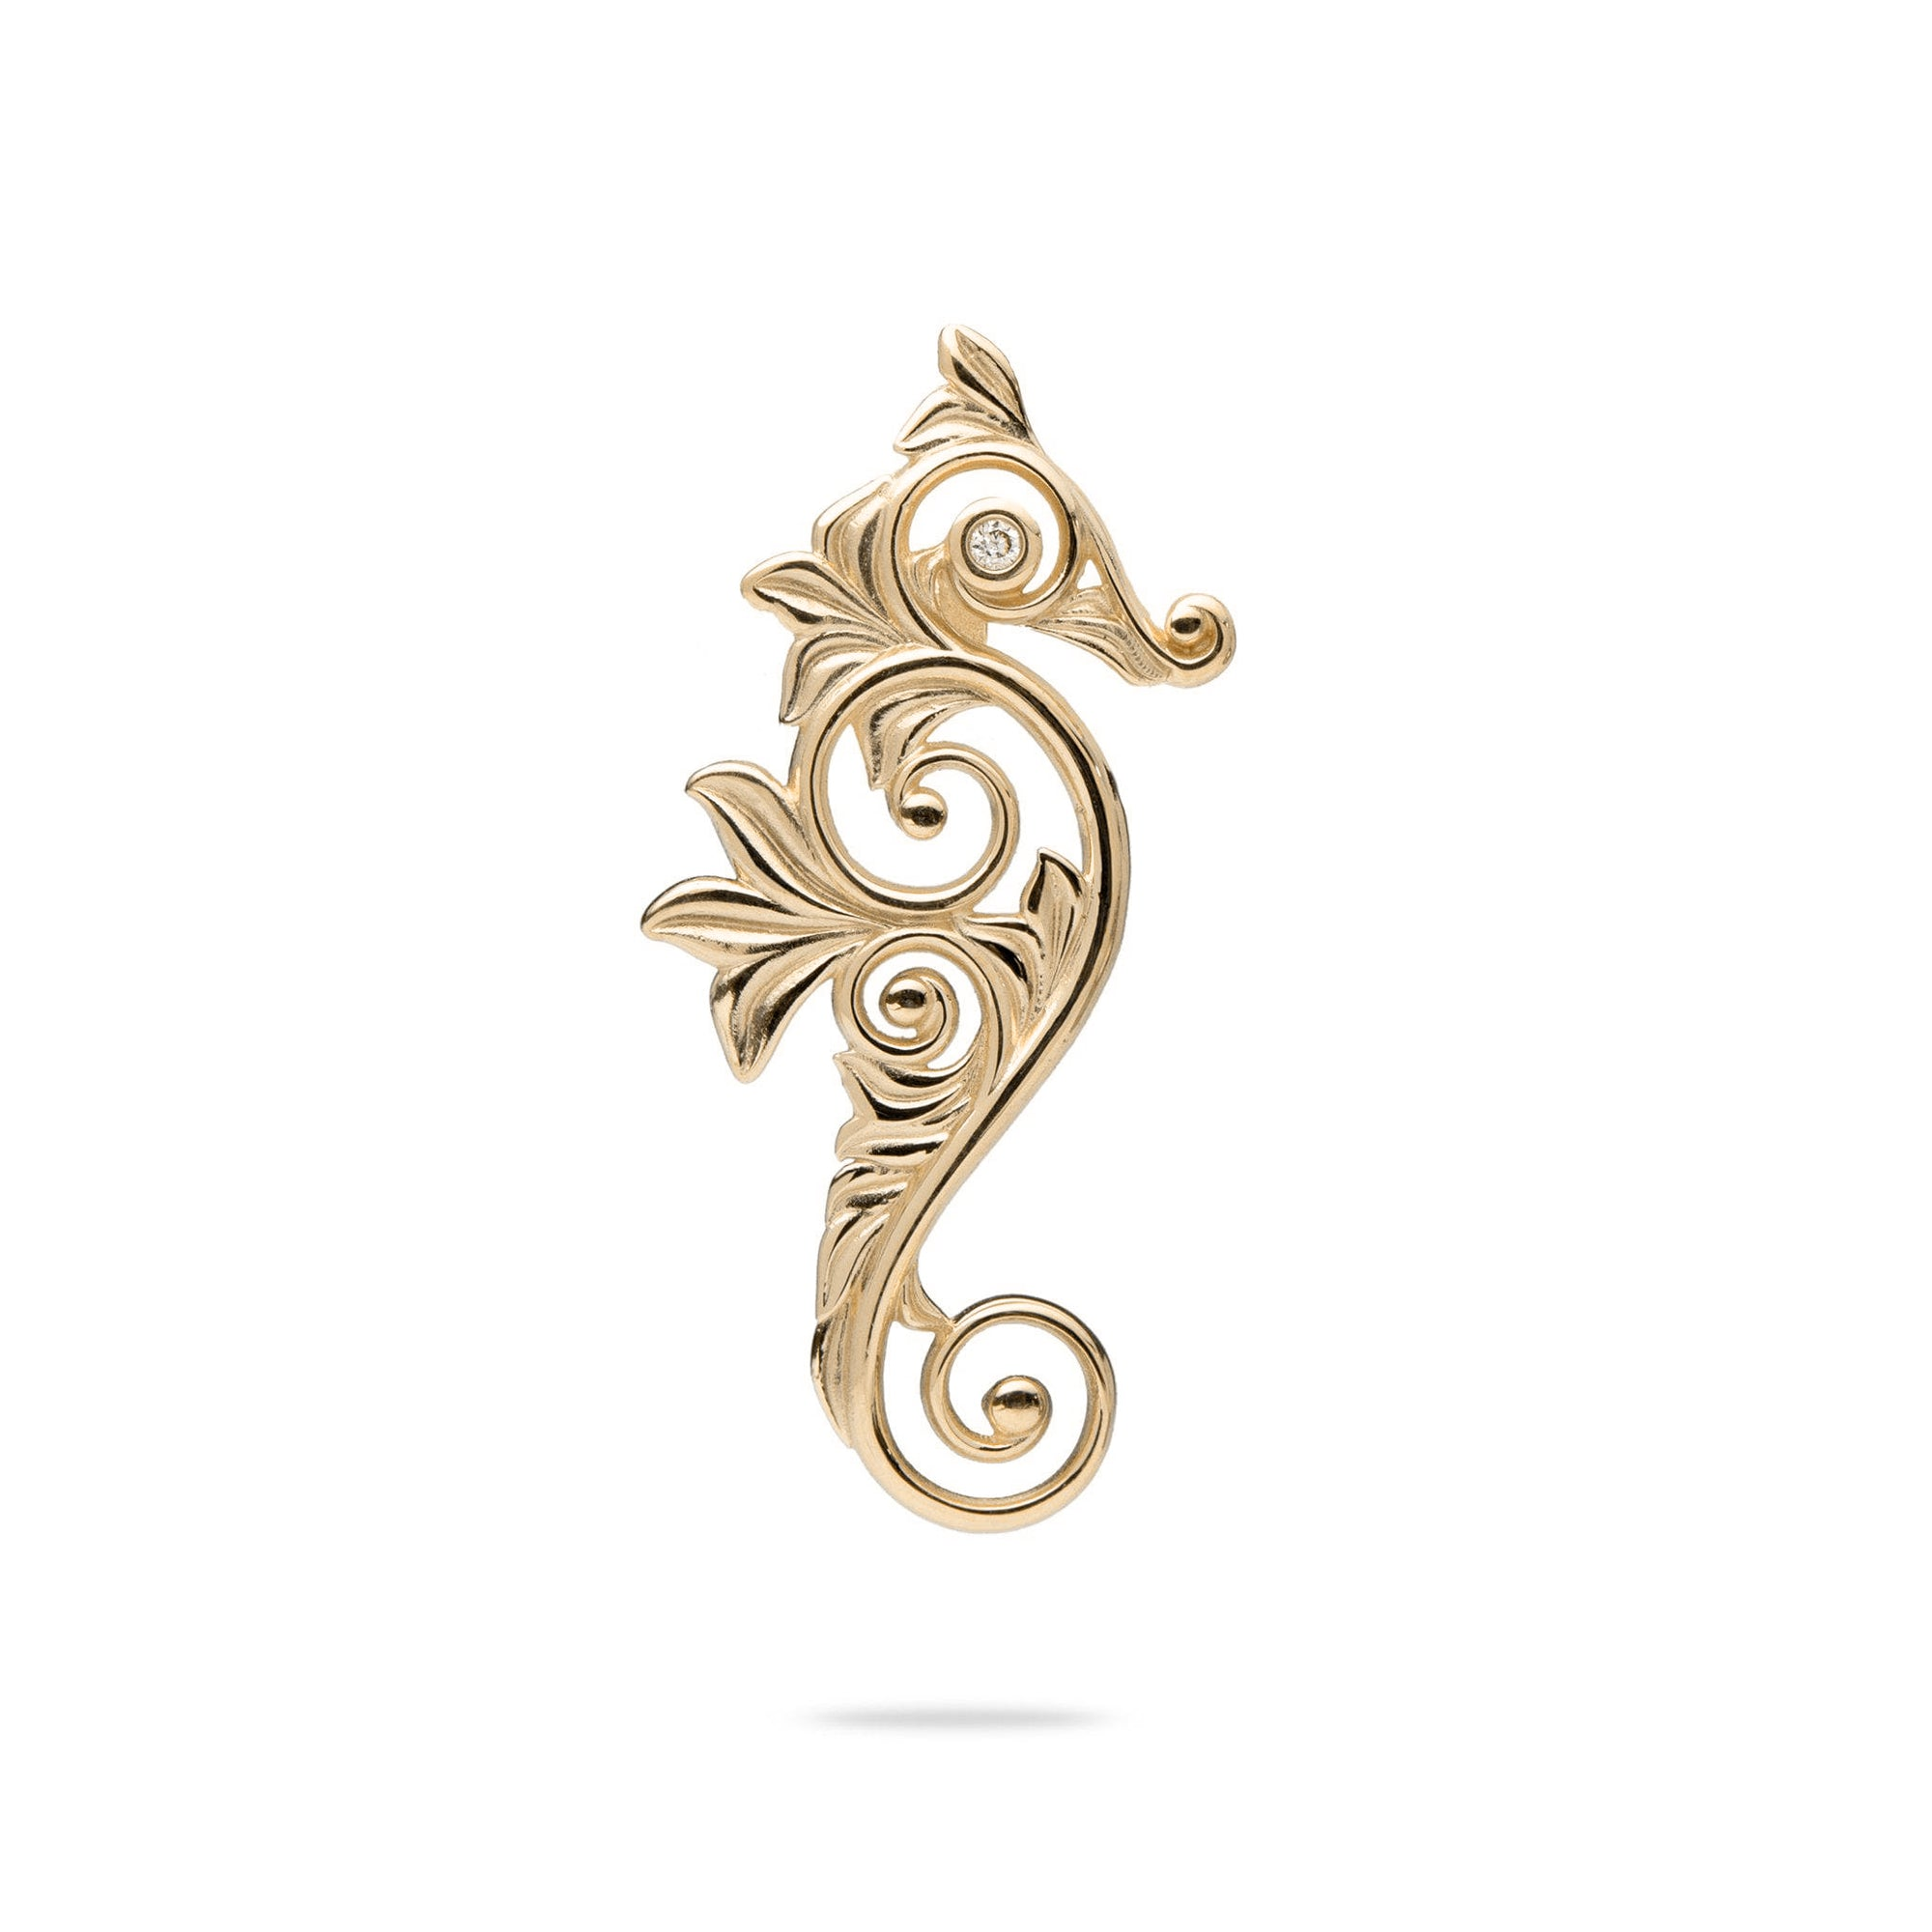 Living Heirloom Seahorse Pendant in Gold with Diamonds - 25mm-[SKU]